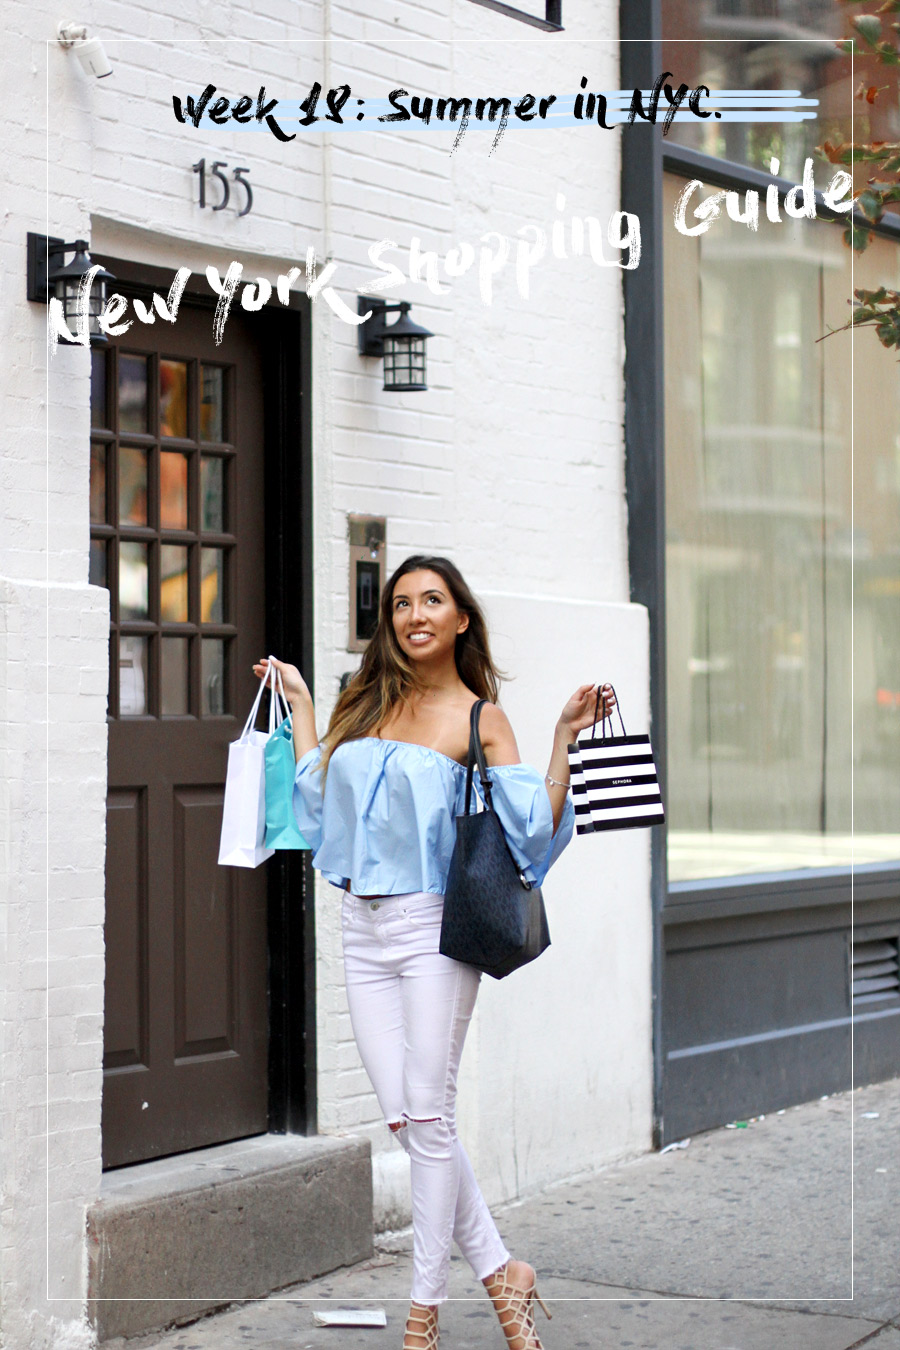 New York City Shopping Guide by blogger Ulia Ali. Шопинг гид по Нью-Йорку от блогерши.